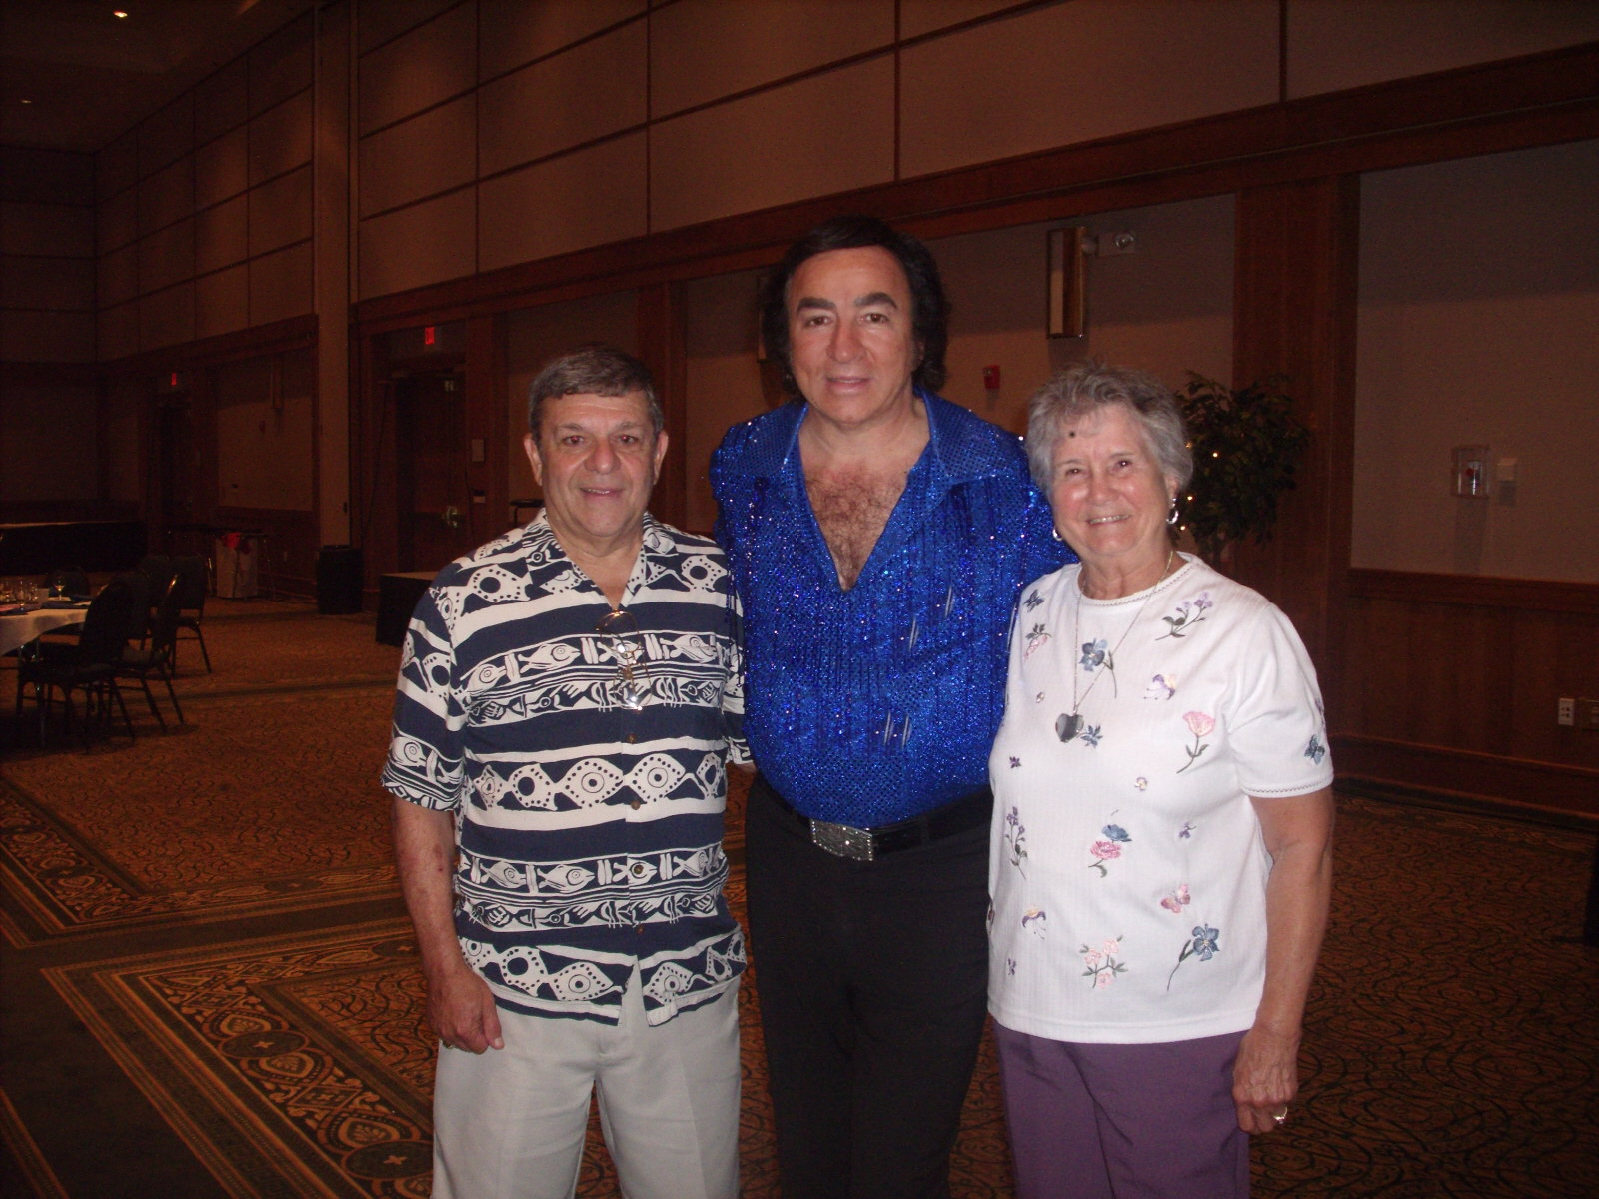 Tom Sadge is pictured as Neil Diamond with Frank S., and his wife of New Bern NC. Thank you, Frank! Photo: Marion Sadge